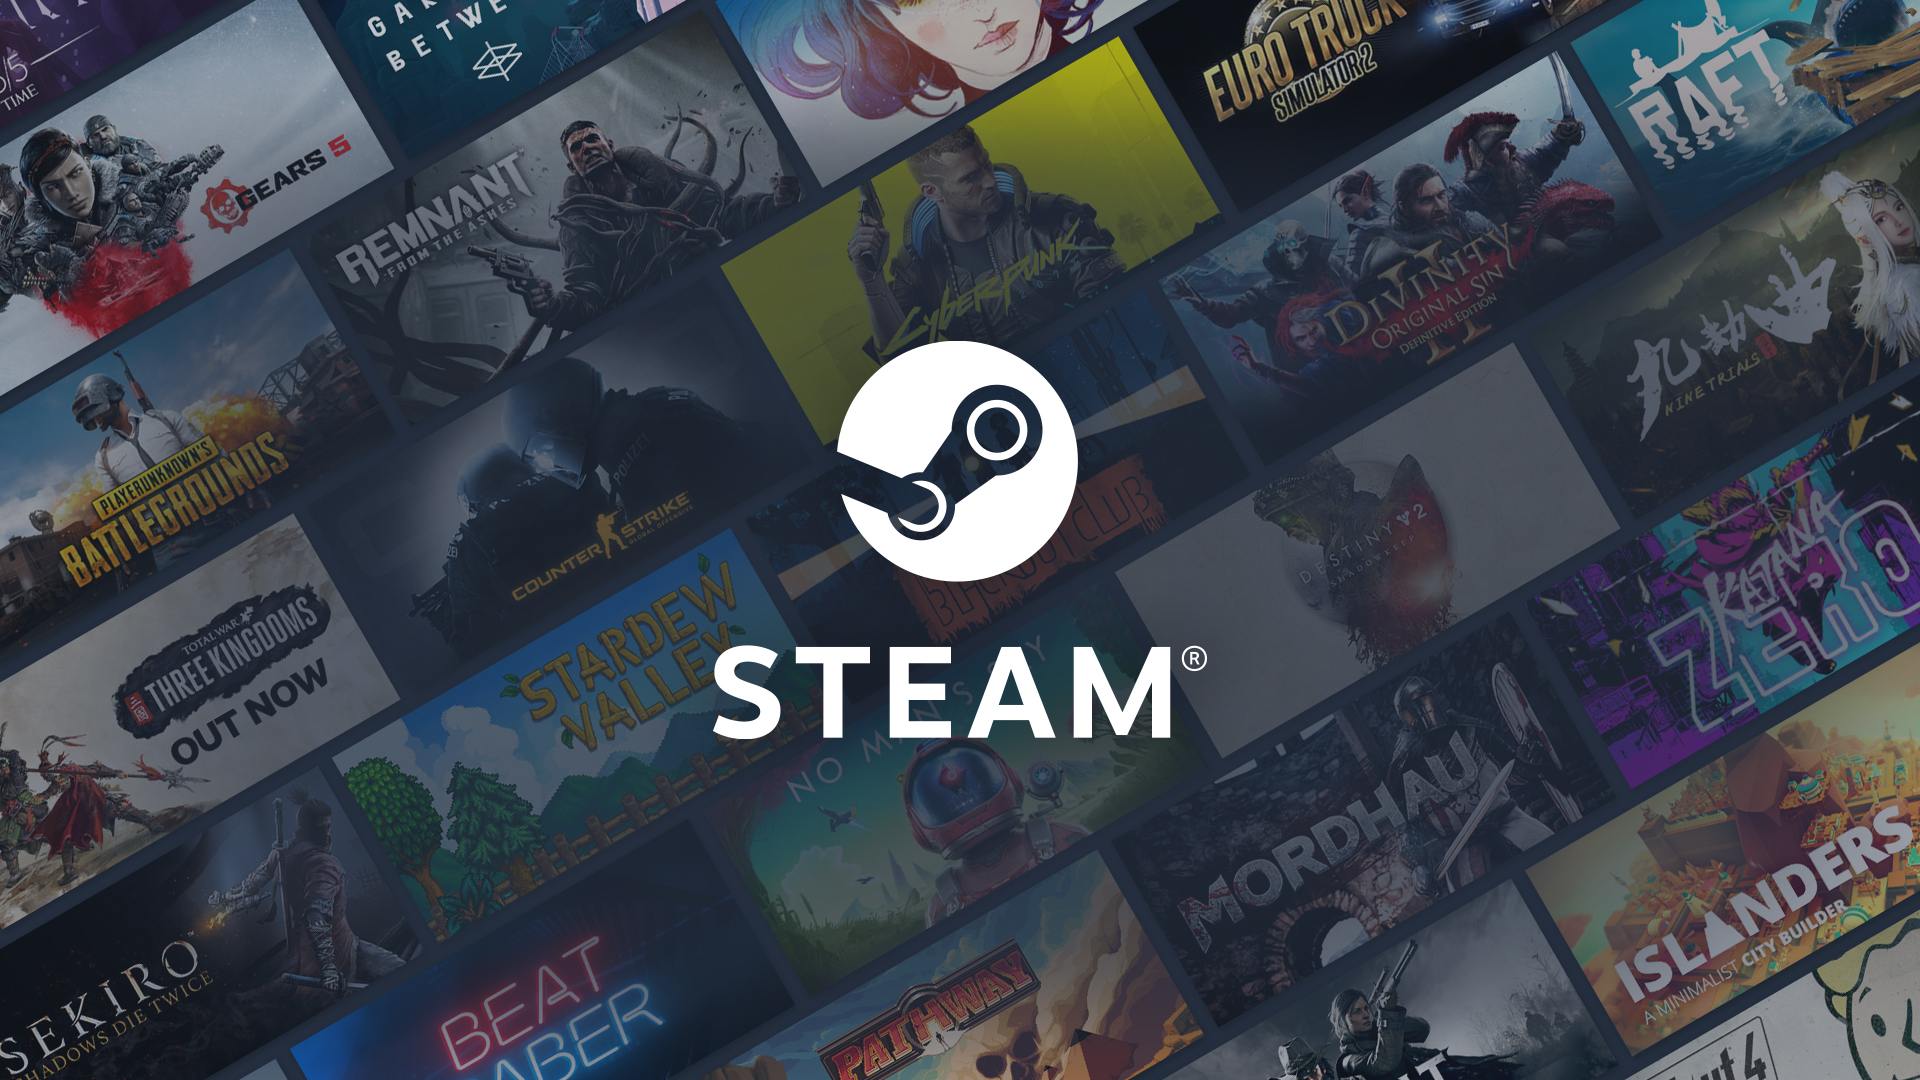 Steam best igg games reddit